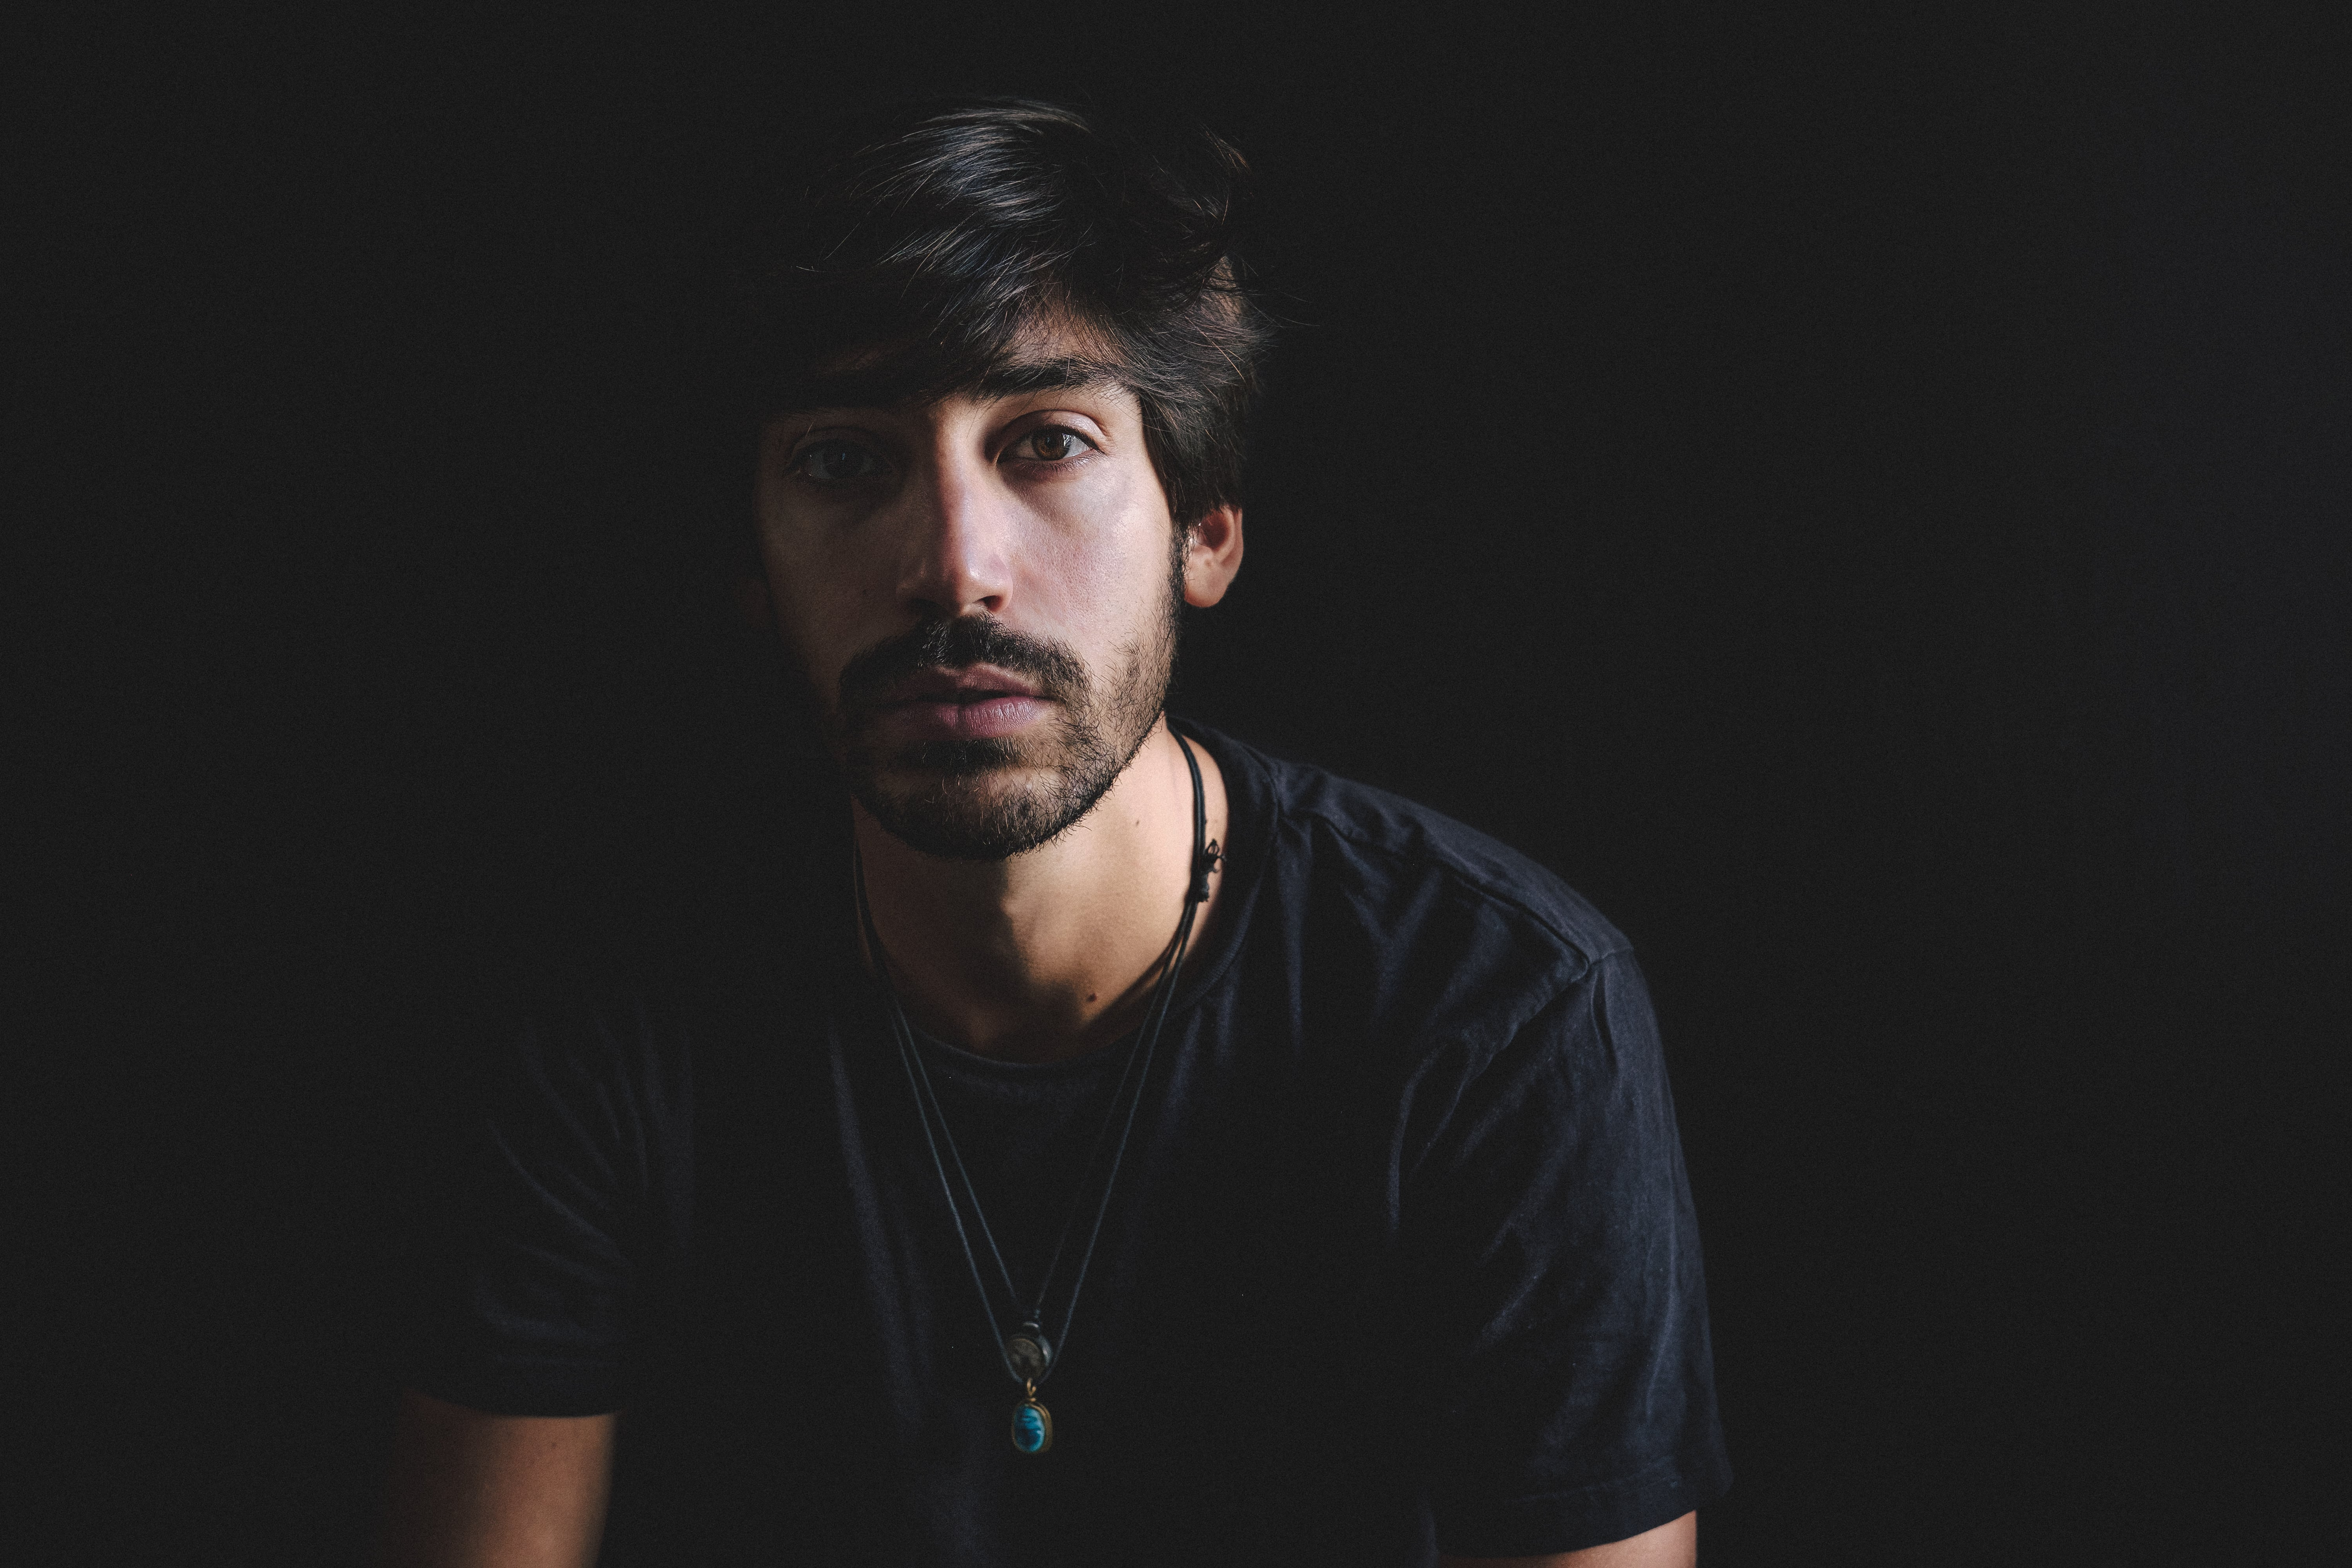 Giorgio De Palo, First Waves, Newcomer, Indie Musik Magazin, Pickymagazine, Picky Magazin, Musikblog, Indie, Musik, Review, EP